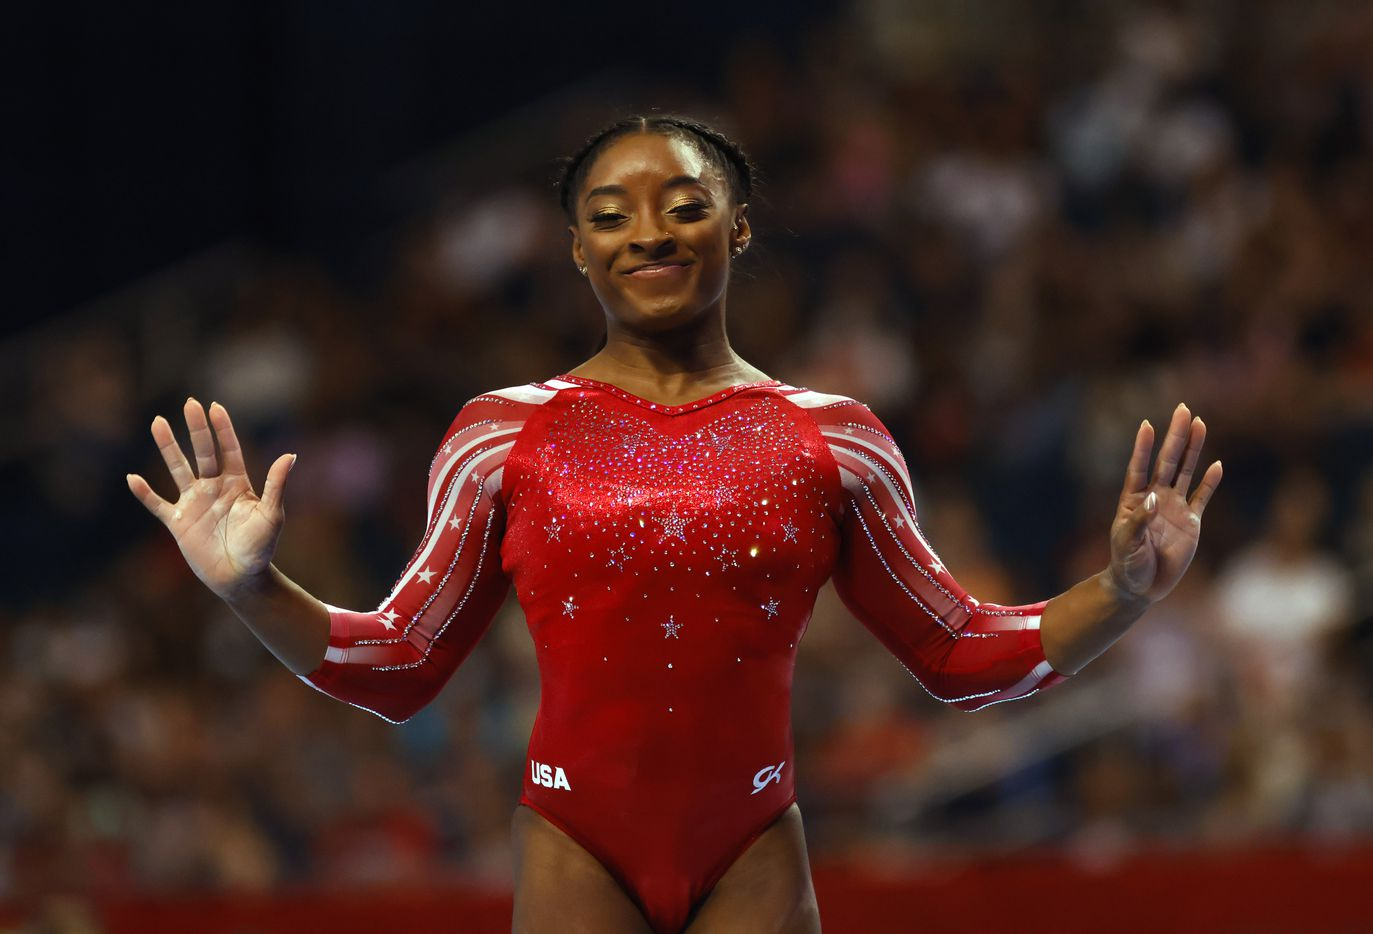 Simone Biles during her floor routine during day 2 of the women's 2021 U.S. Olympic Trials at The Dome at America's Center on Saturday, June 27, 2021 in St Louis, Missouri.